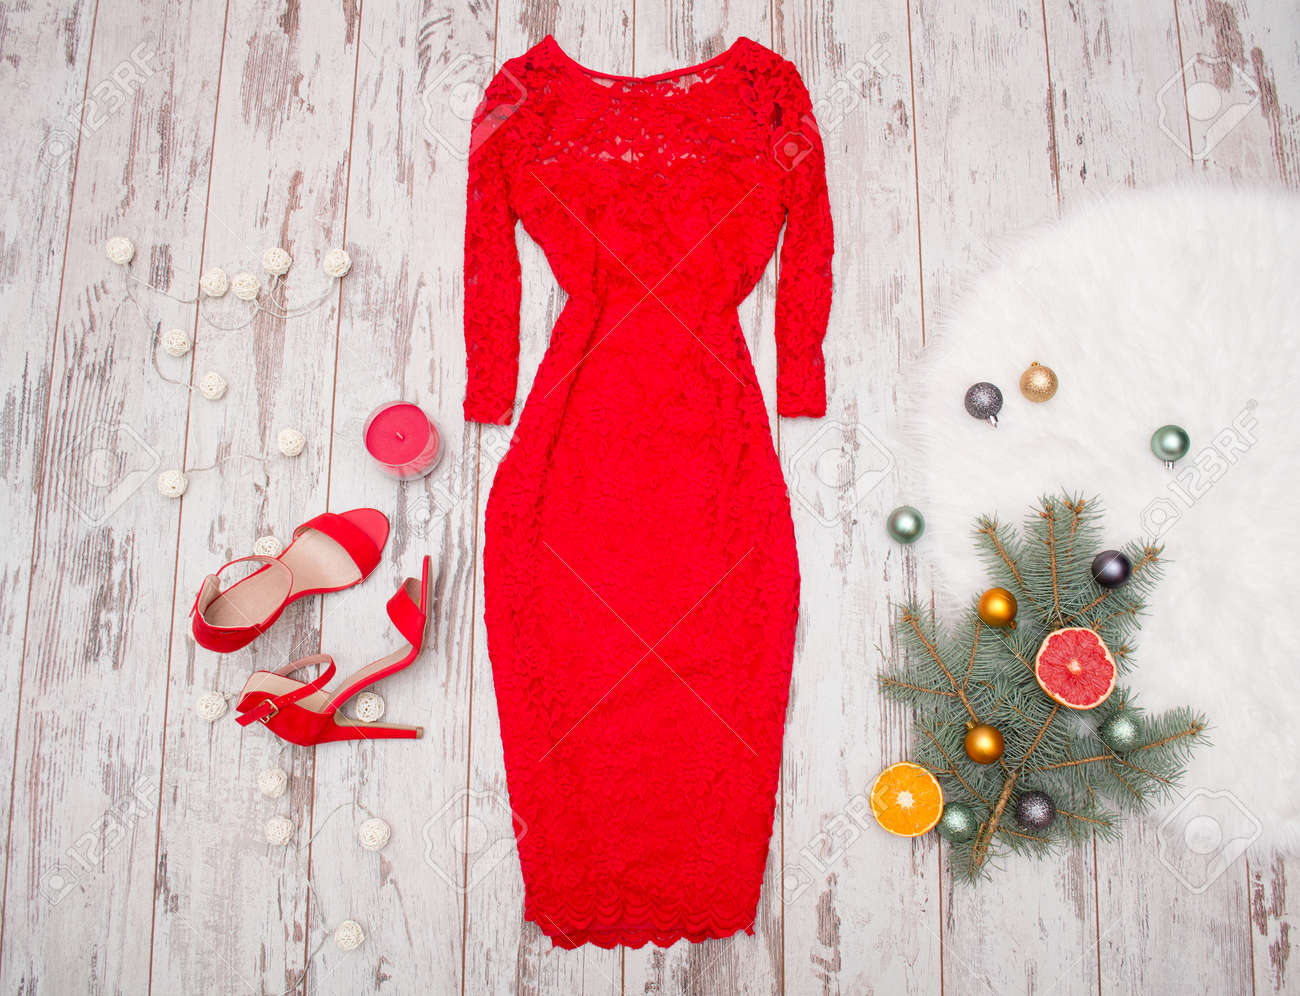 Red Elegant Lace Dress Red Shoes On A Wooden Background Fir